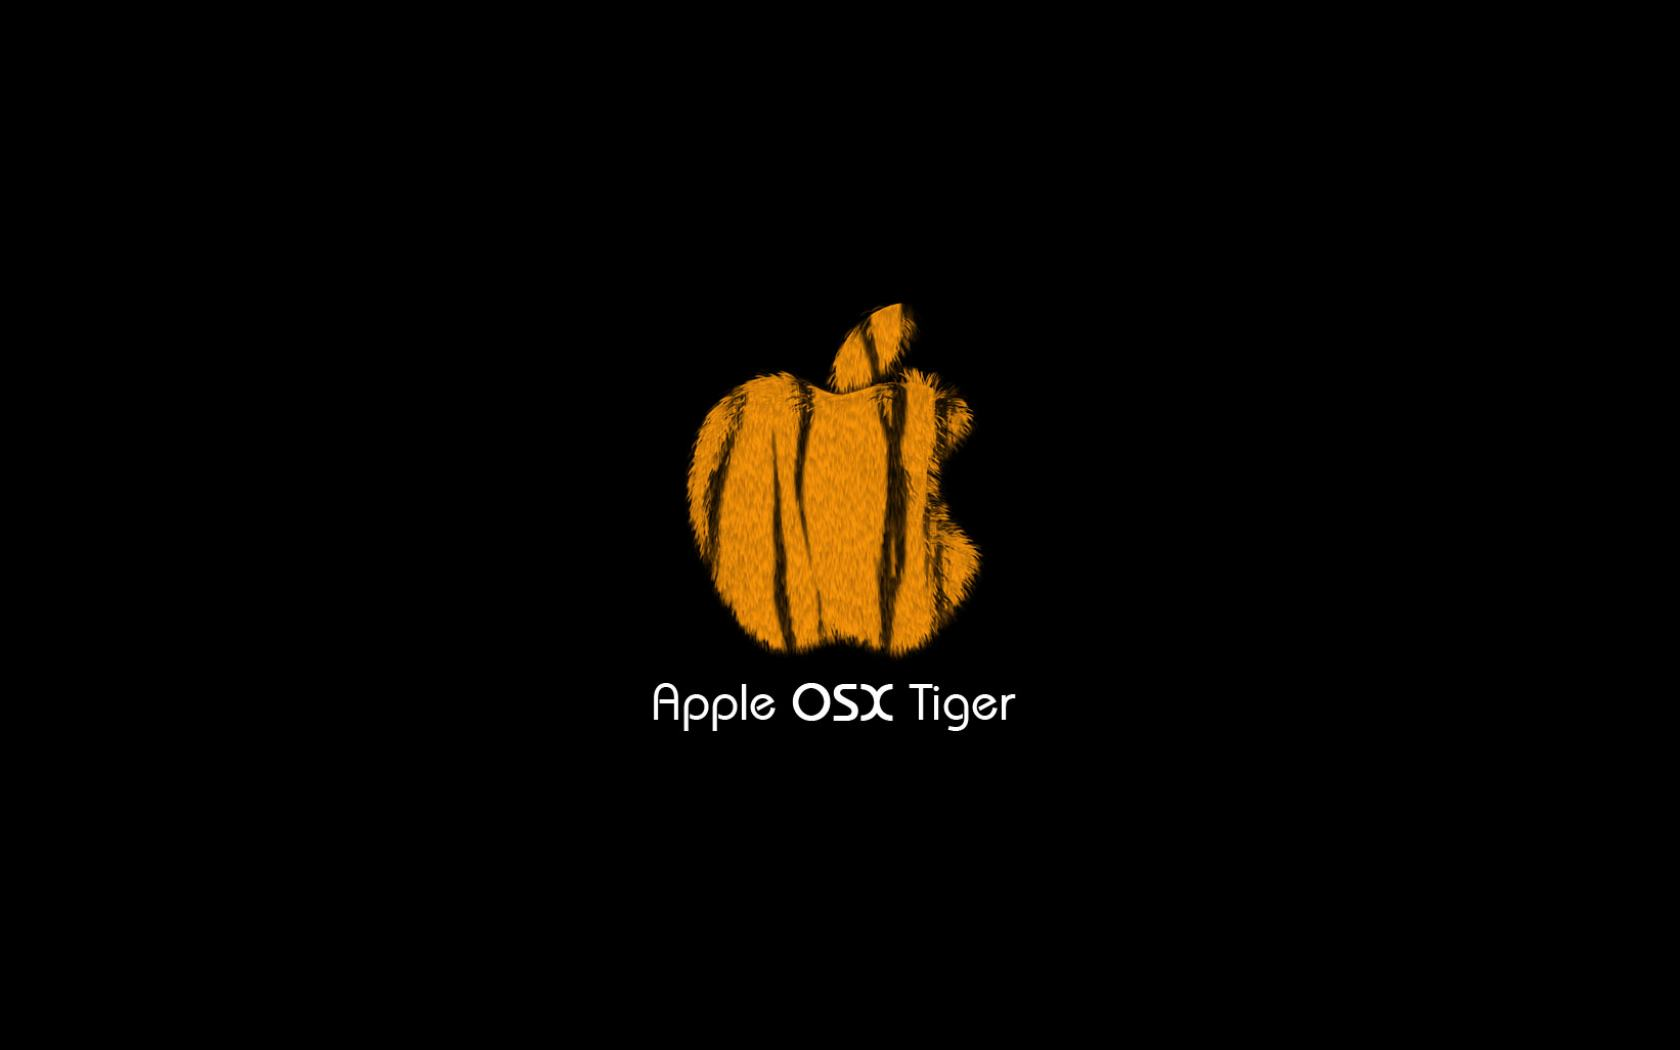 Обои Apple Tiger - скачать 1680x1050